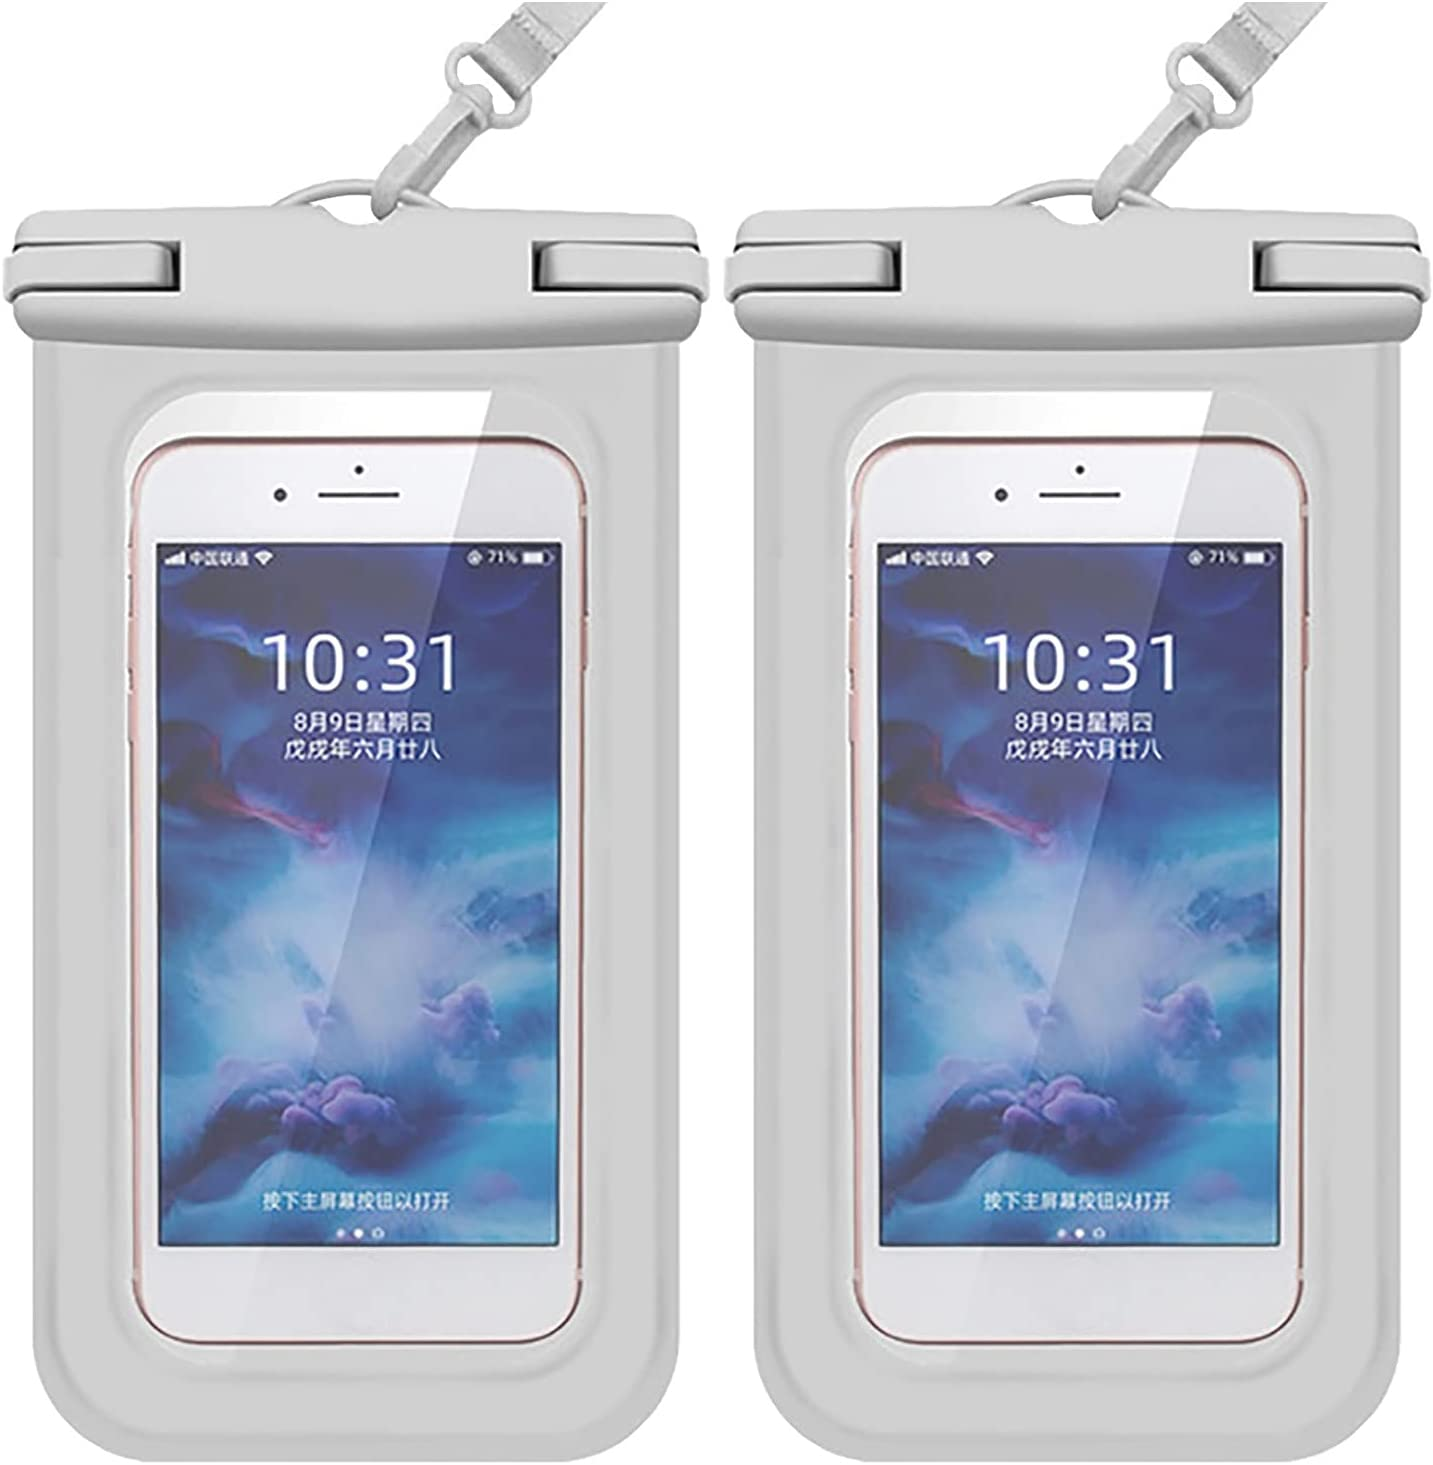 Waterproof Phone Pouch, Universal IPX8 Waterproof Case, for Swimming Lanyard Pouch Protector Perfect Underwater Photography Up to 7.0 inch Cellphone Dry Bag for Beach Pooling Travel Outdoor